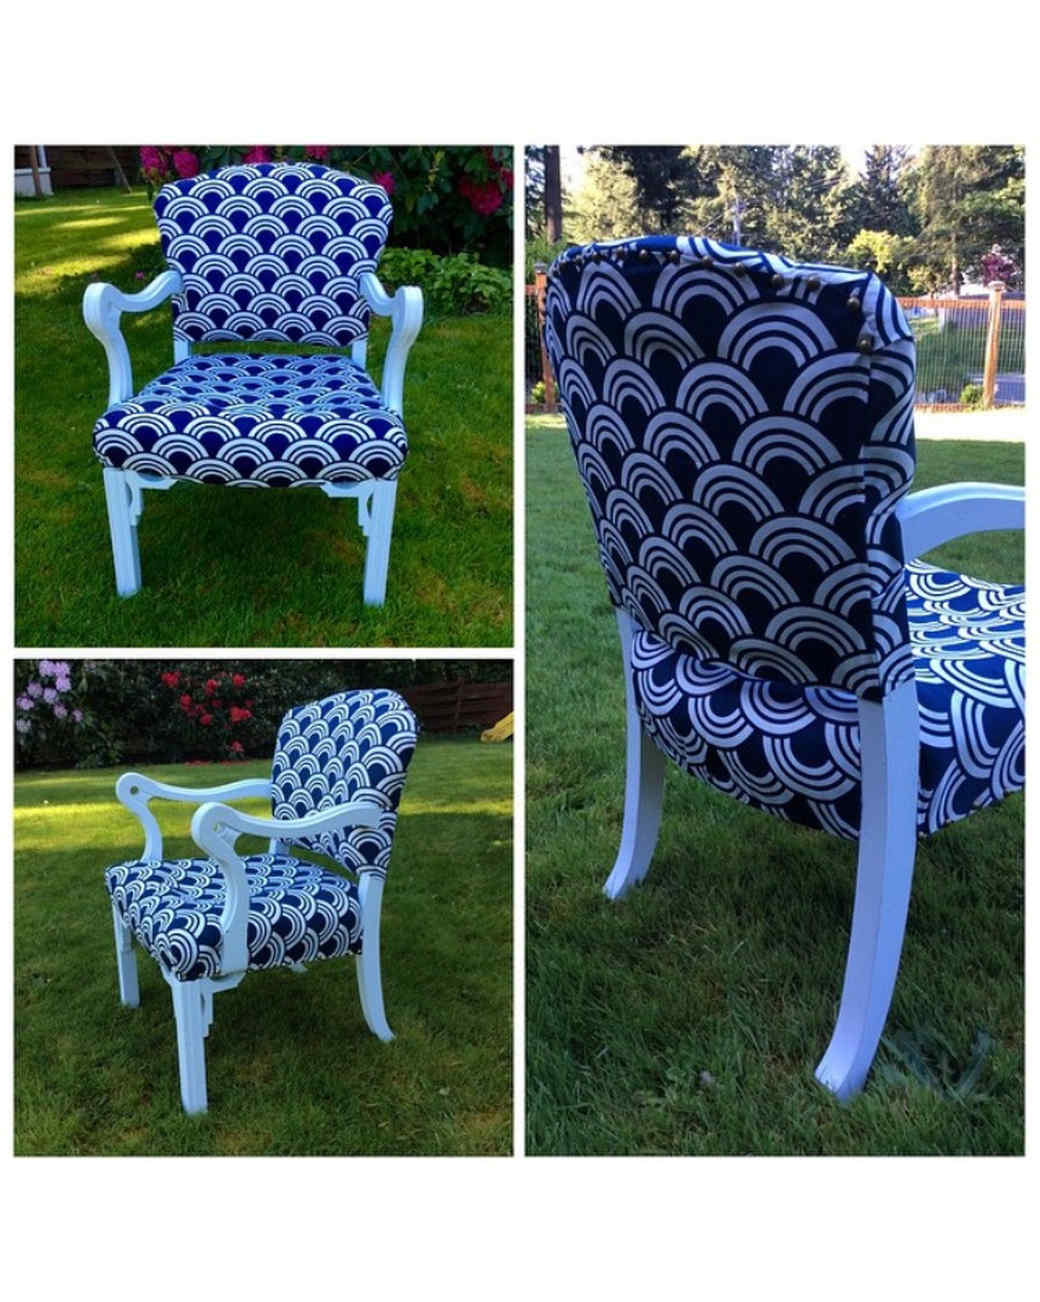 before-after-art-deco-chair-6-1015.jpg